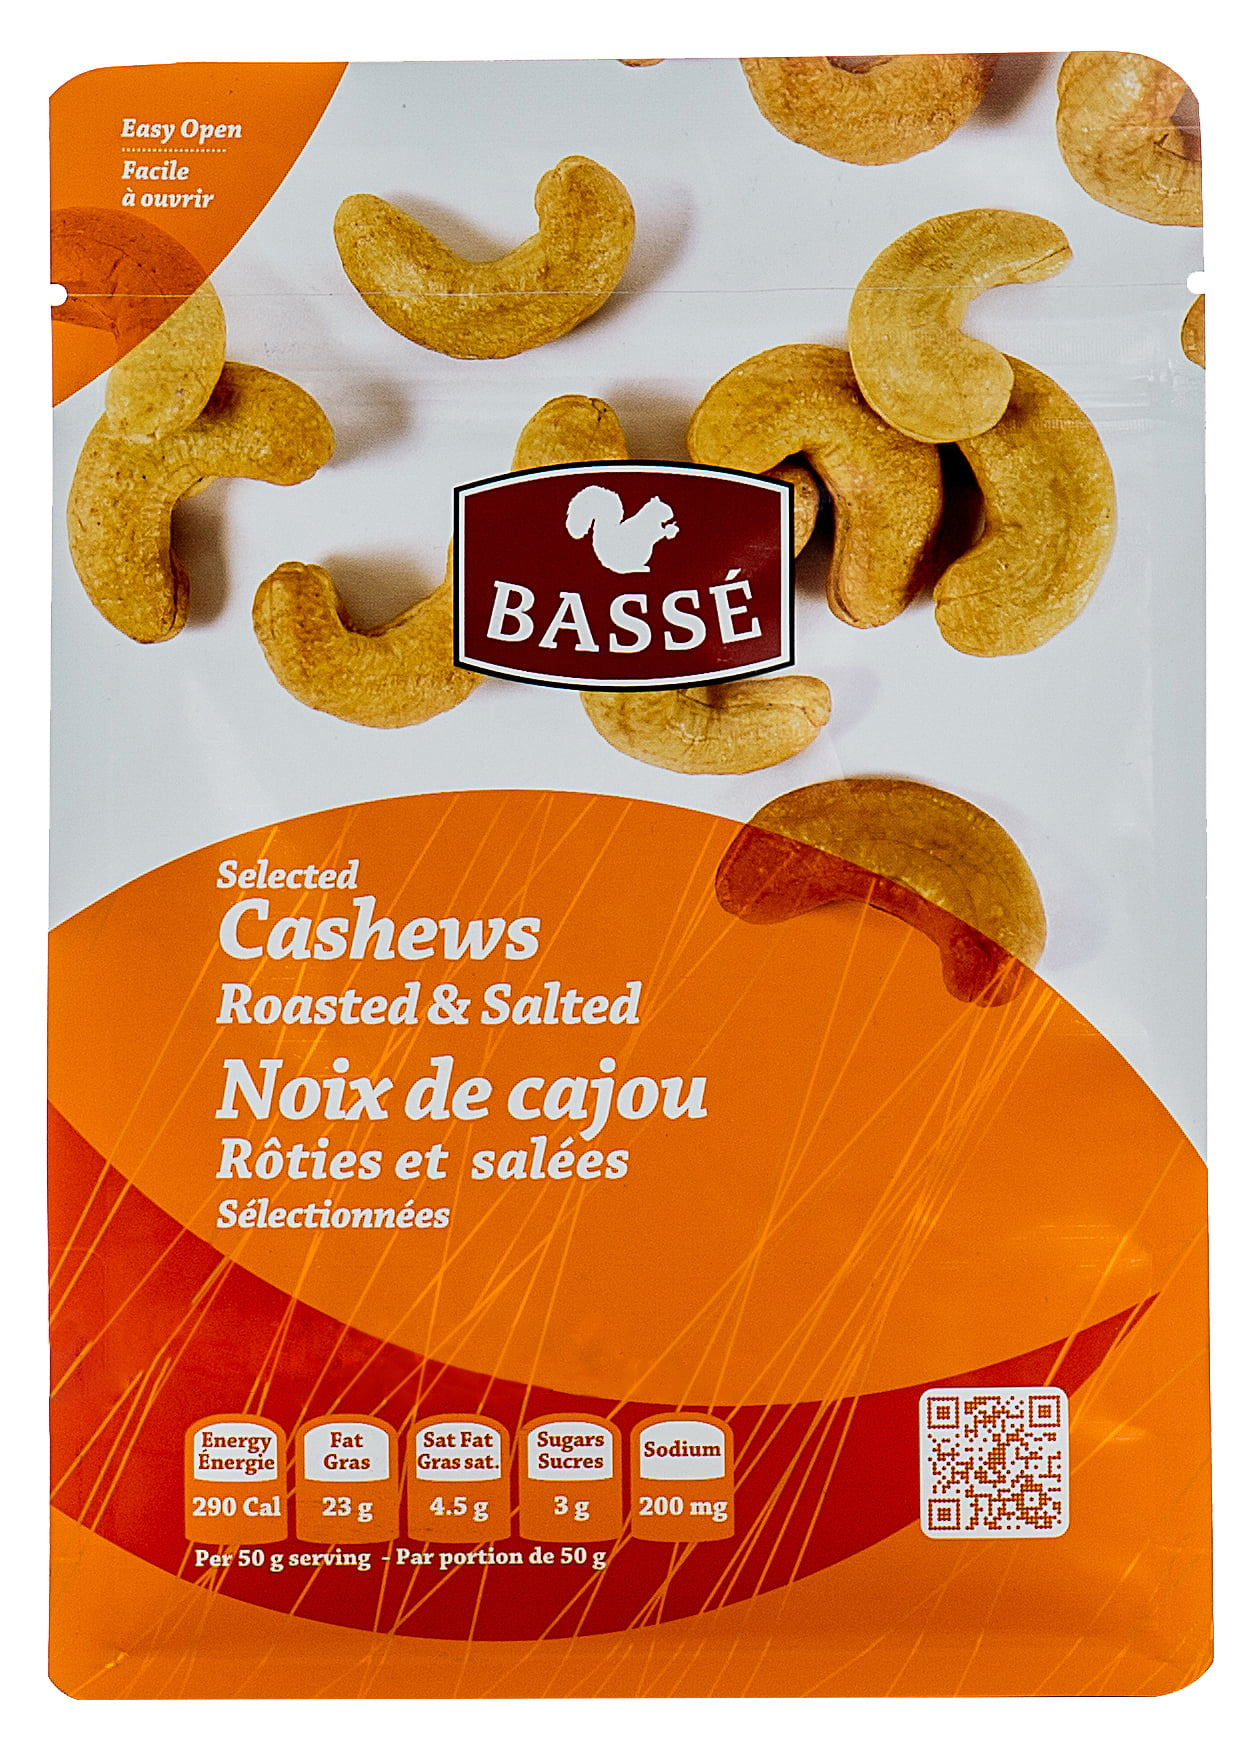 Basse Selected Cashews, Roasted & Salted (7oz.) Salted Cashews Boasted Toasted Posted &... by Basse Nuts